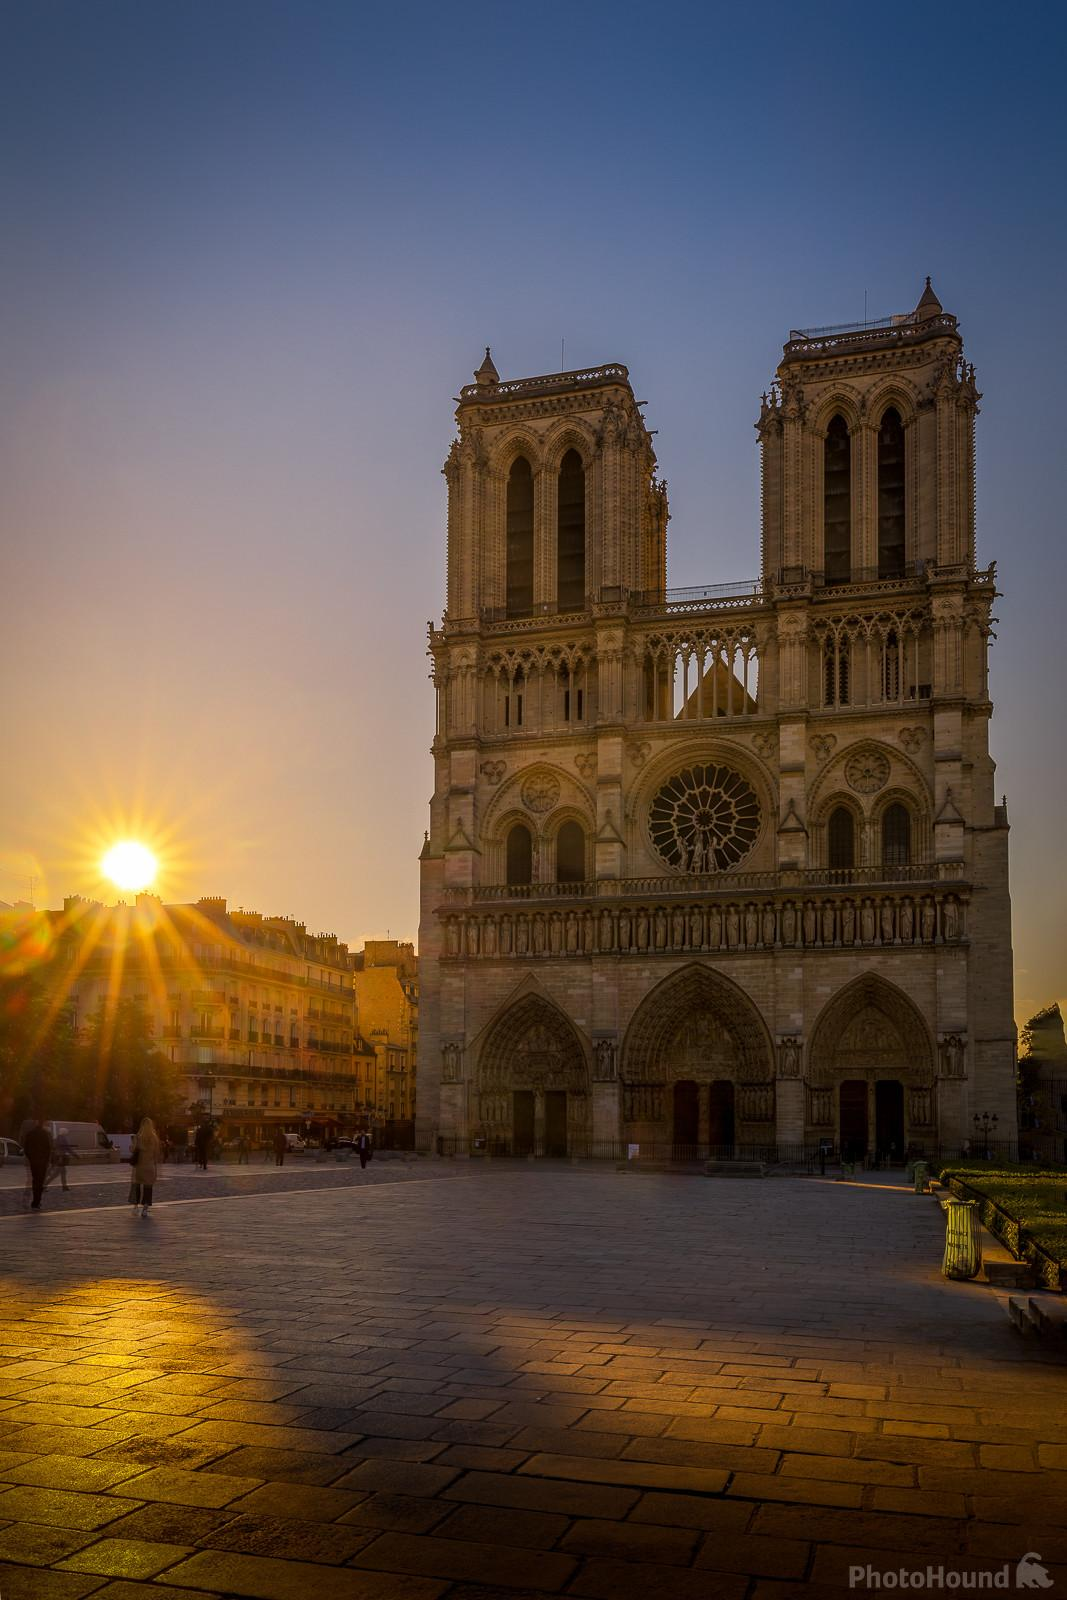 Sunrise on the cathedral Notre Dame de Paris seen from the Parvis Notre Dame - Place Jean-Paul II.